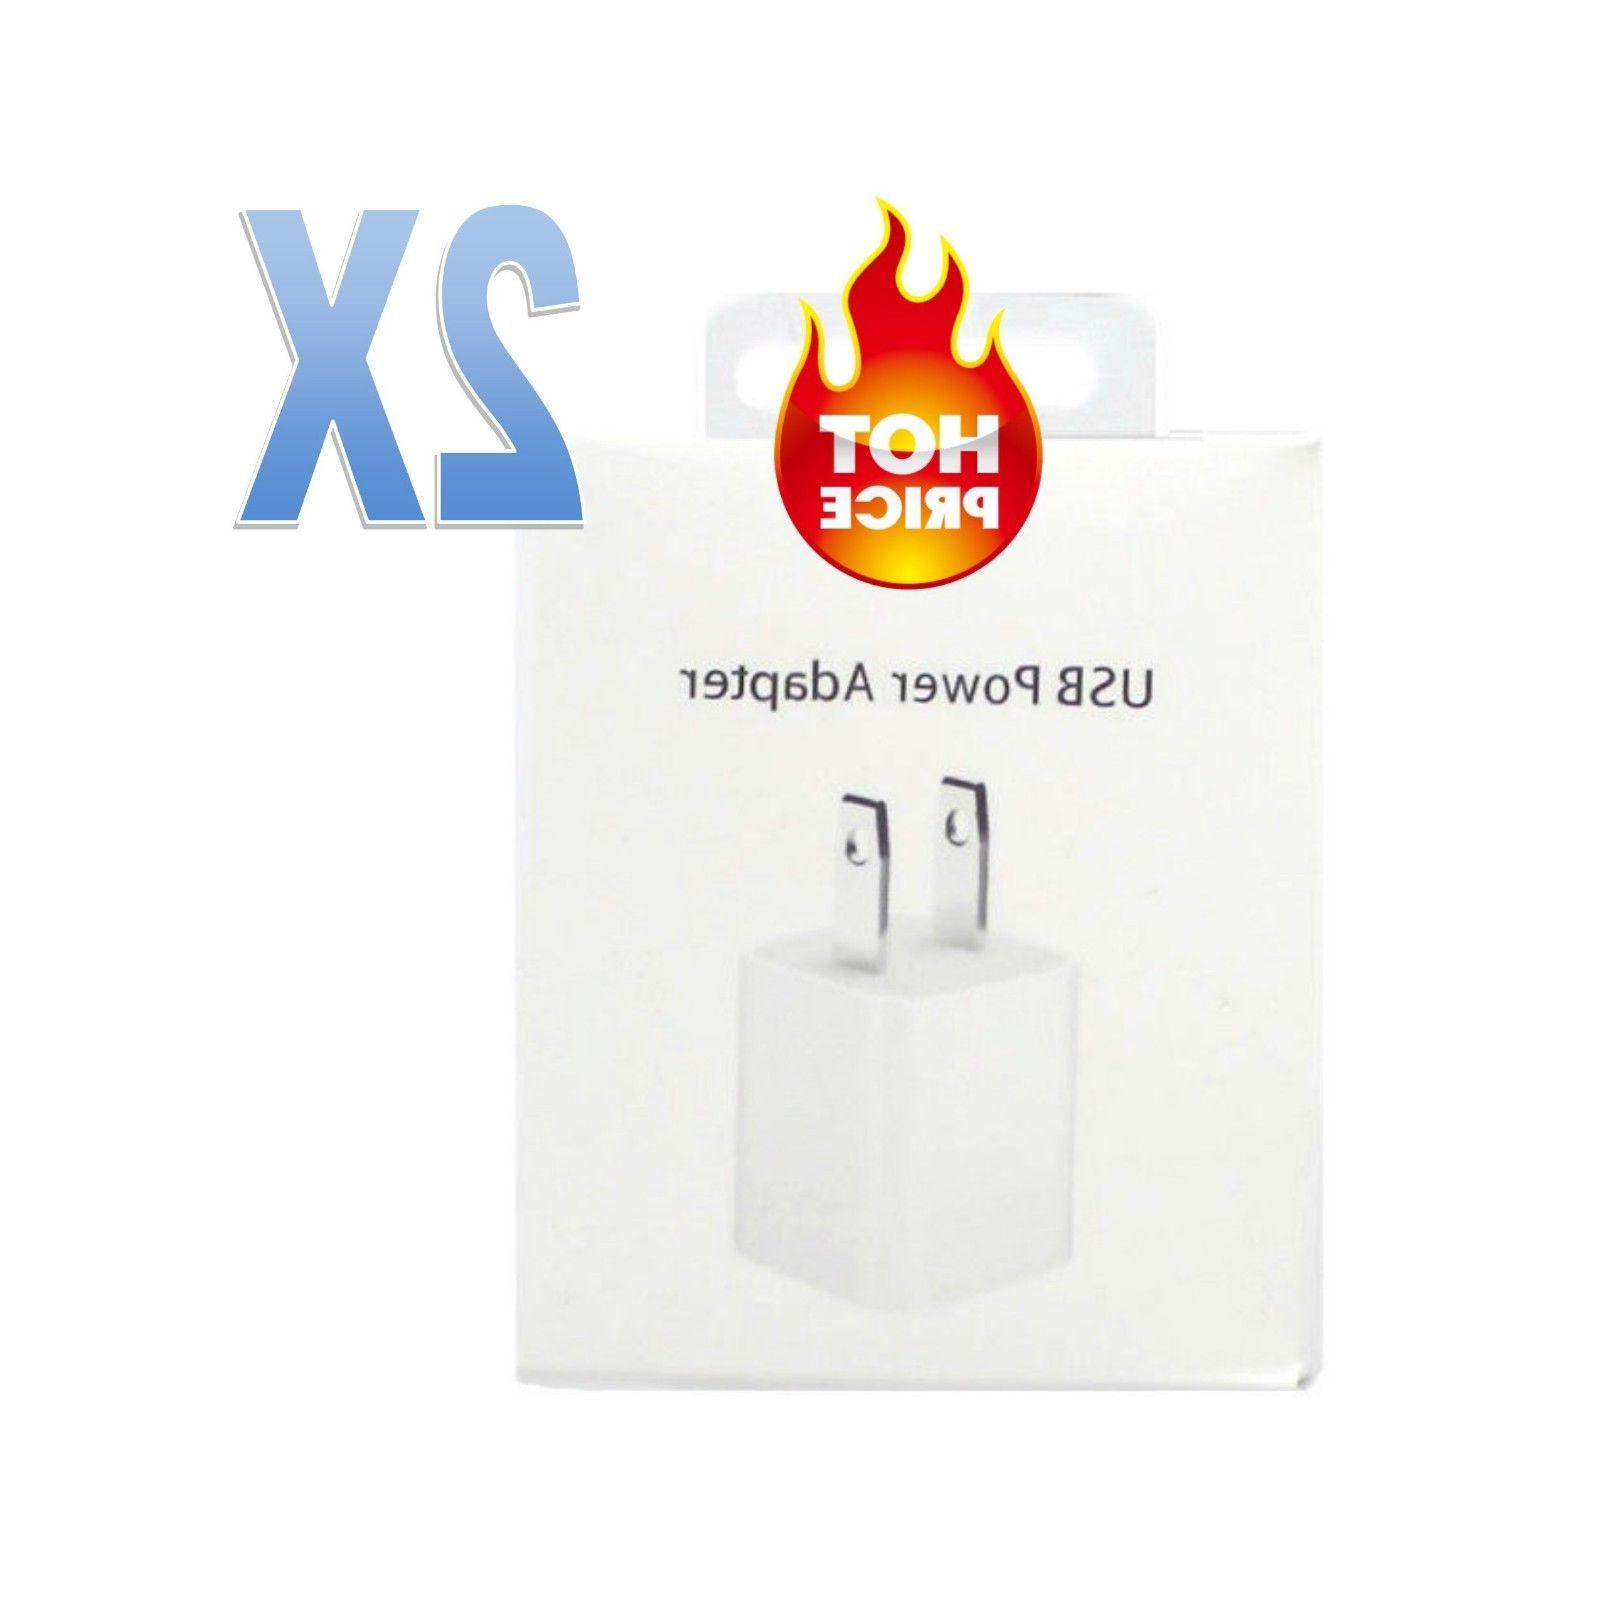 2X OEM USB Wall Charger Cube Power Adapter for Apple iPhone